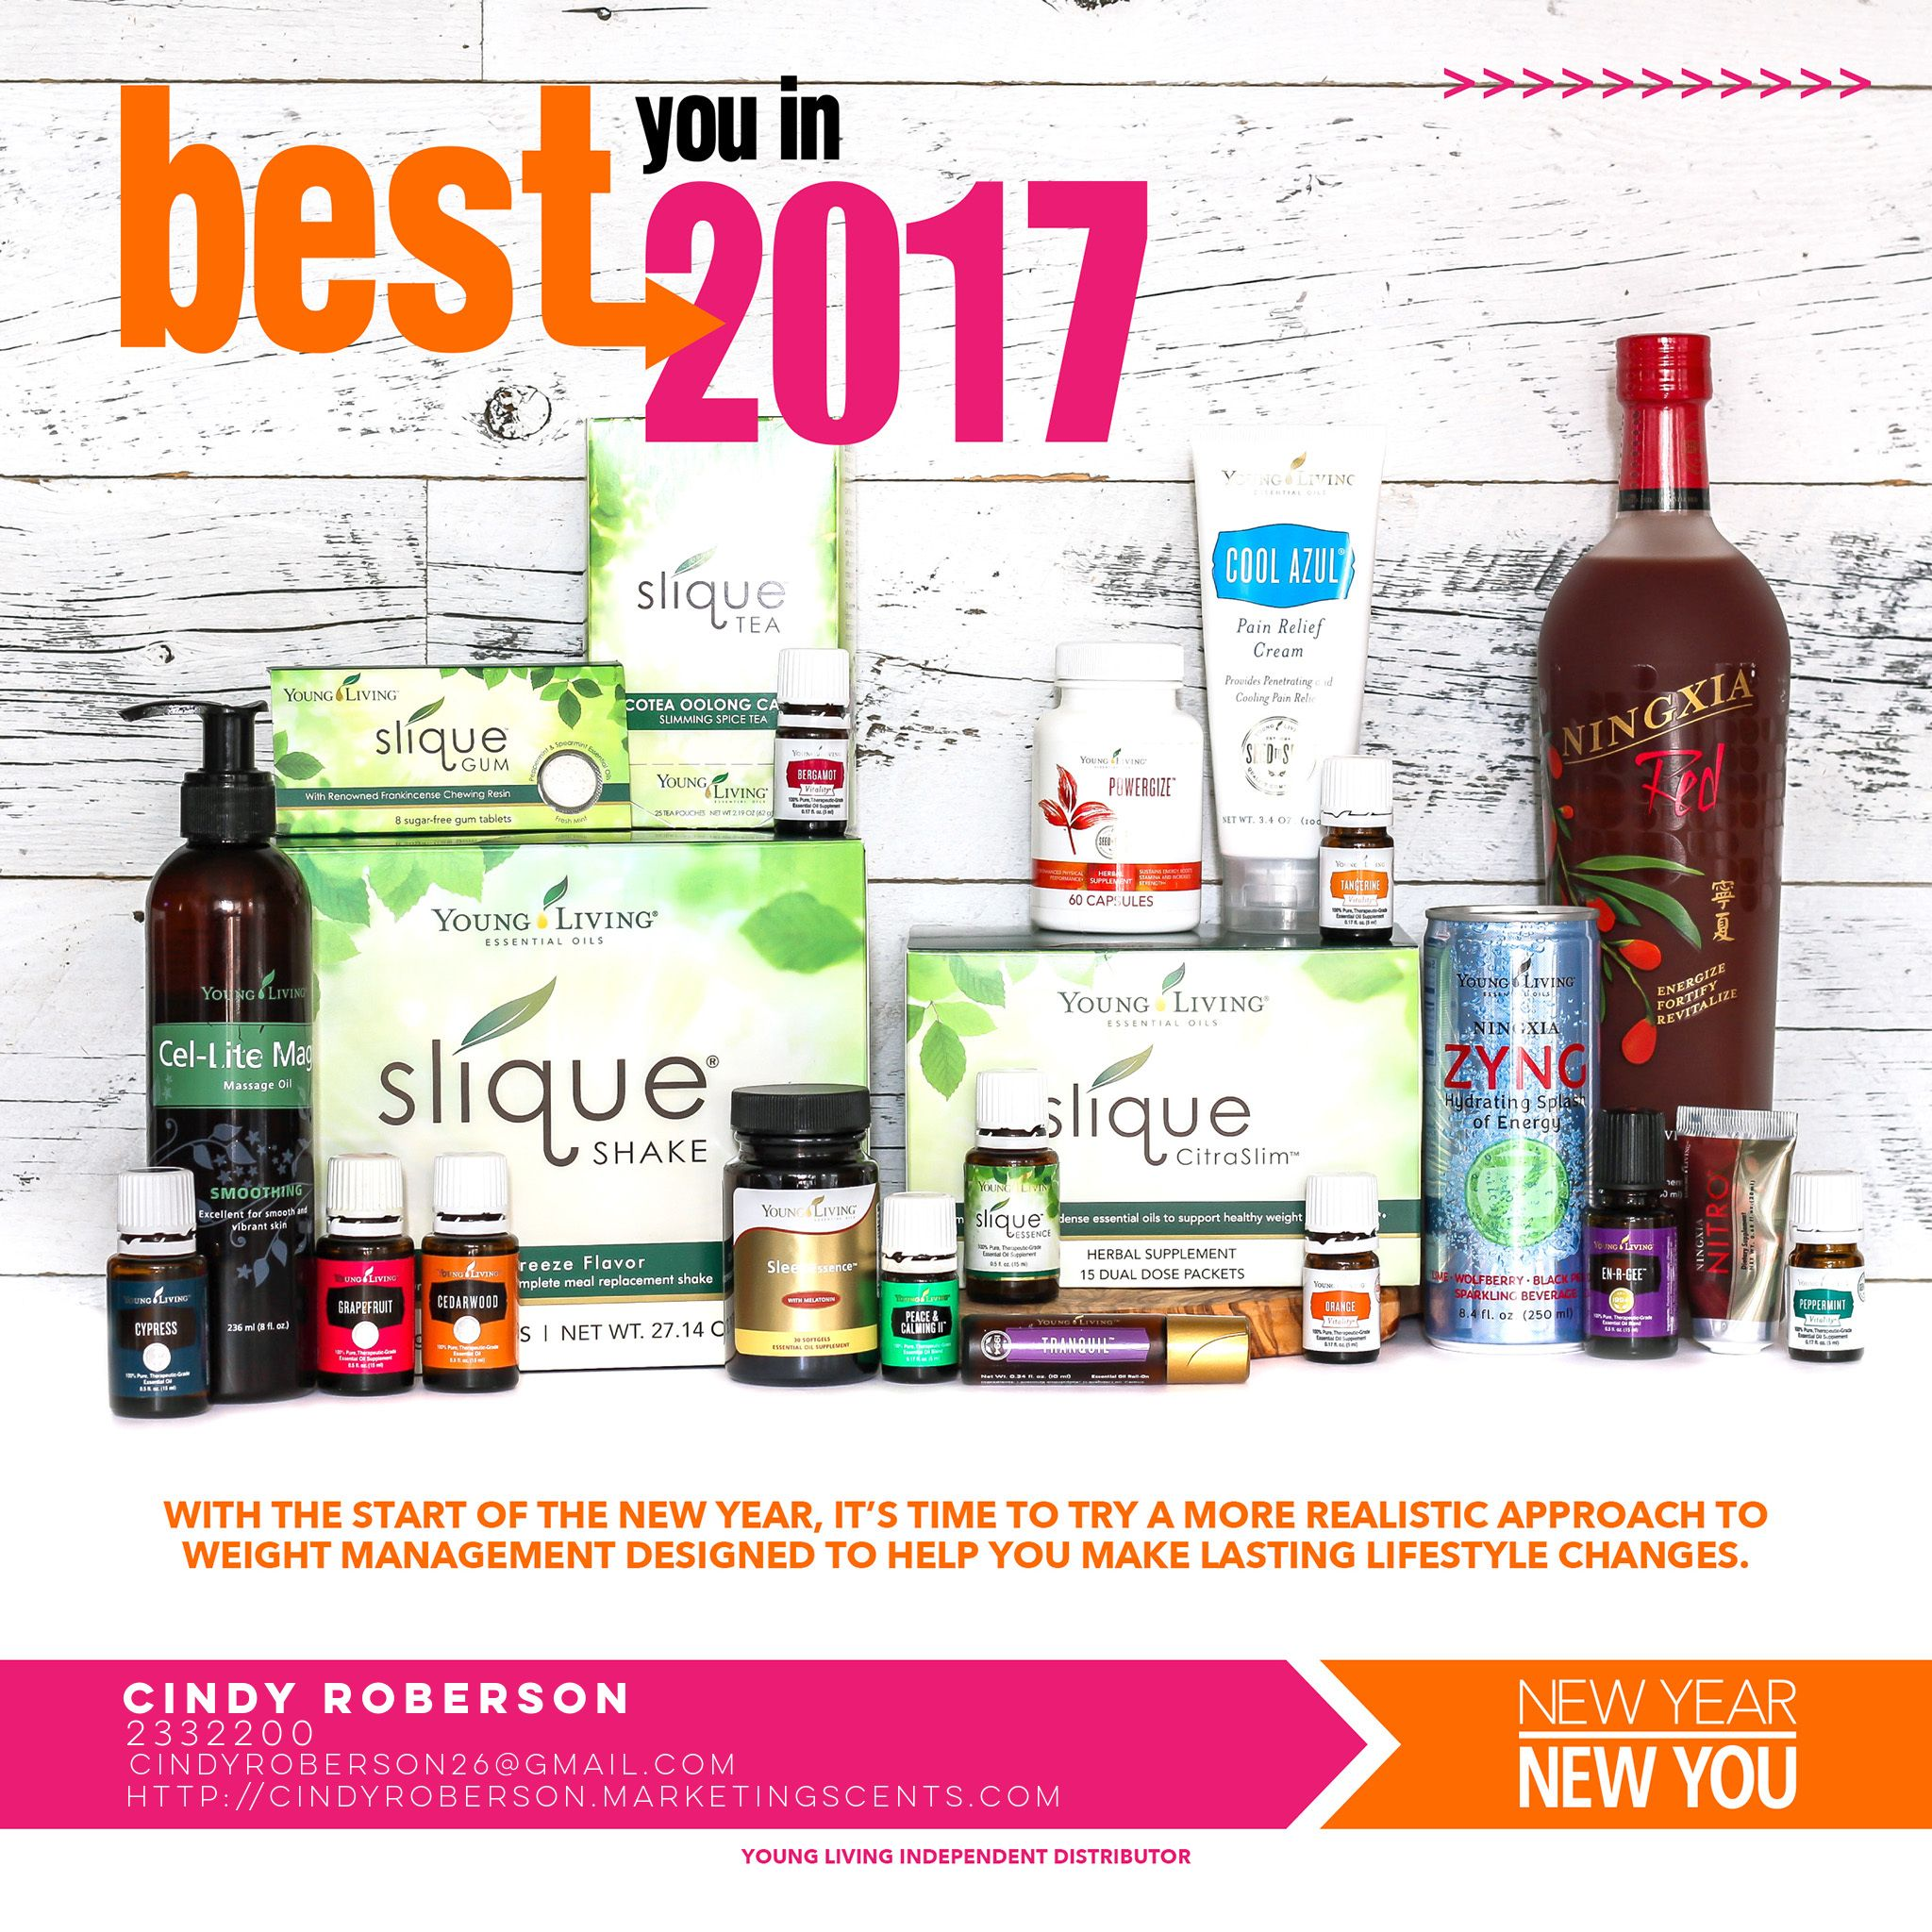 Become a new you with this all natural system.  Lose weight and support your bodies wellness!